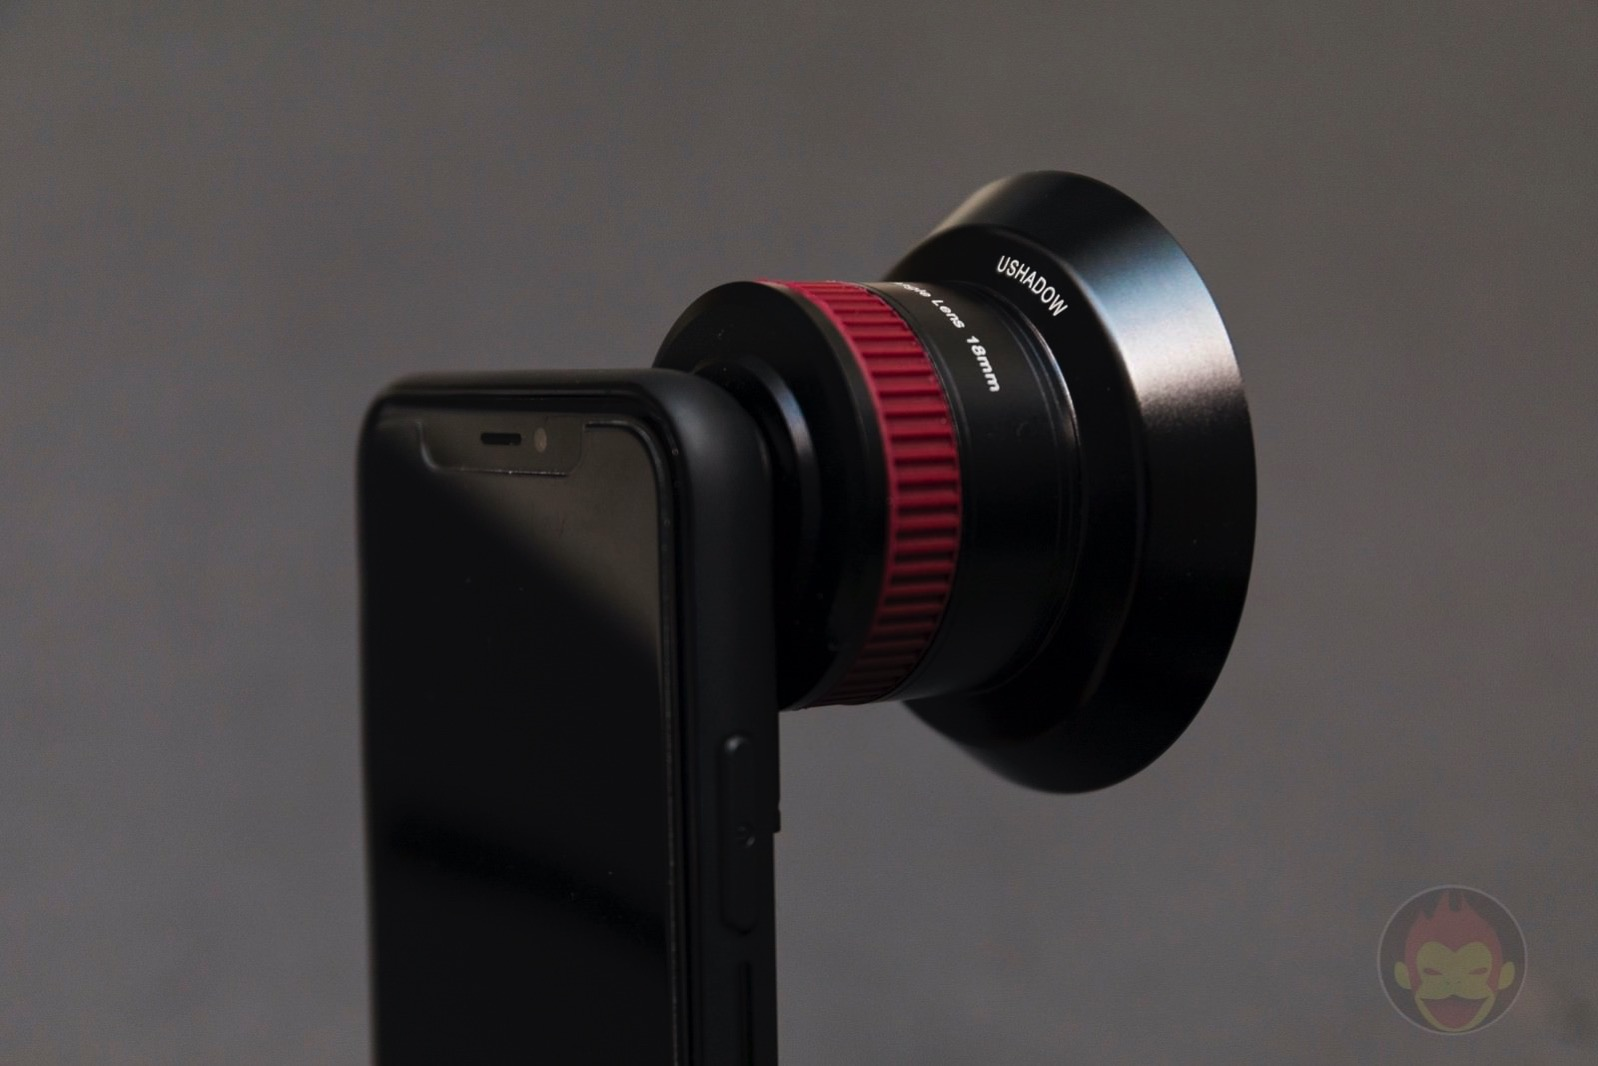 USHADOW X1 Lens System Review 14